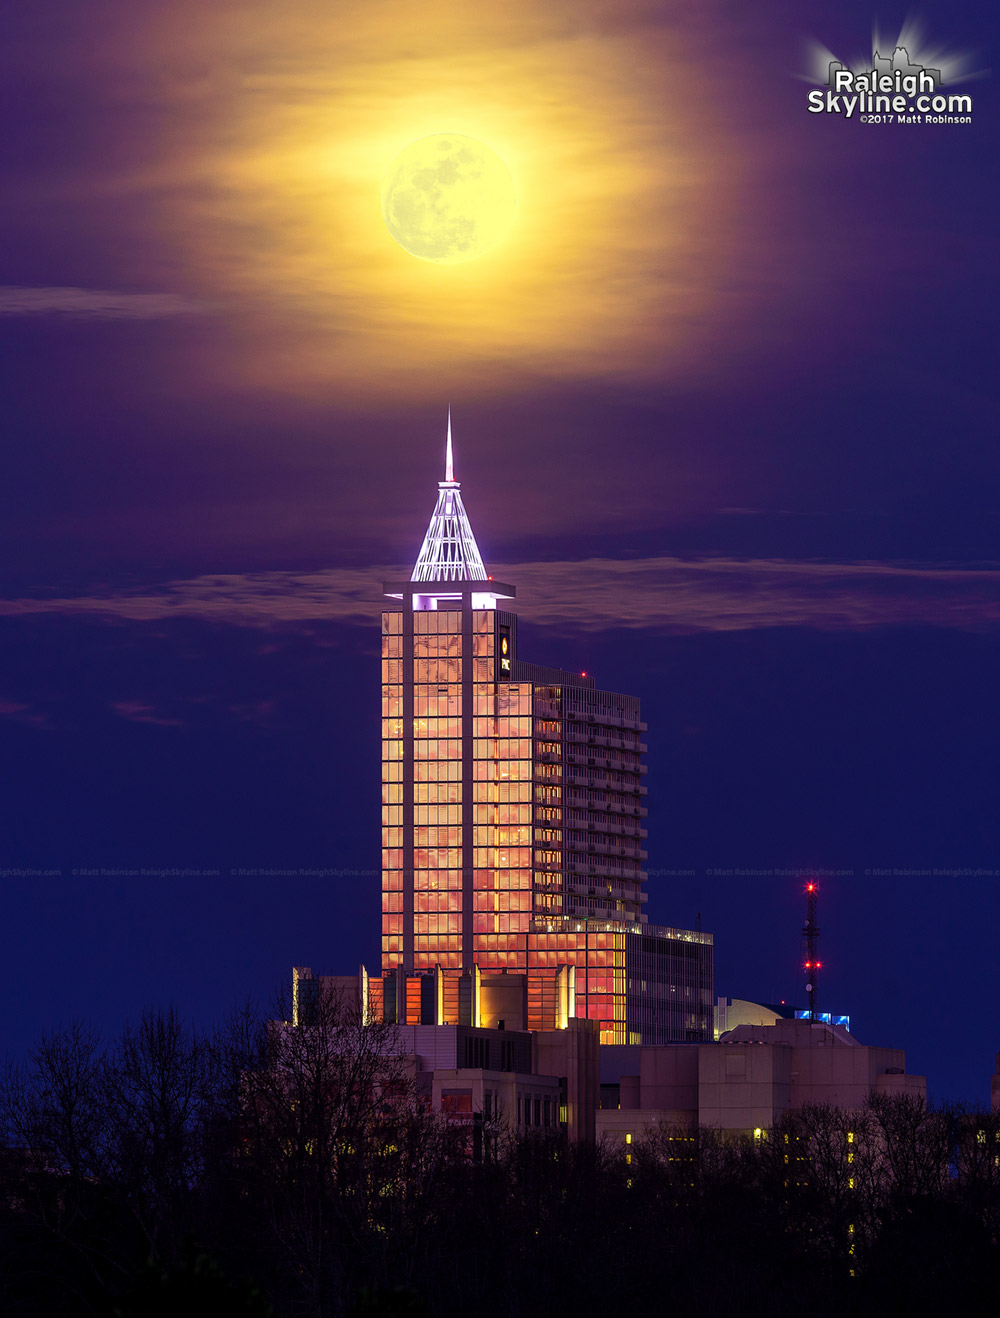 Full moon over PNC Plaza at sunset